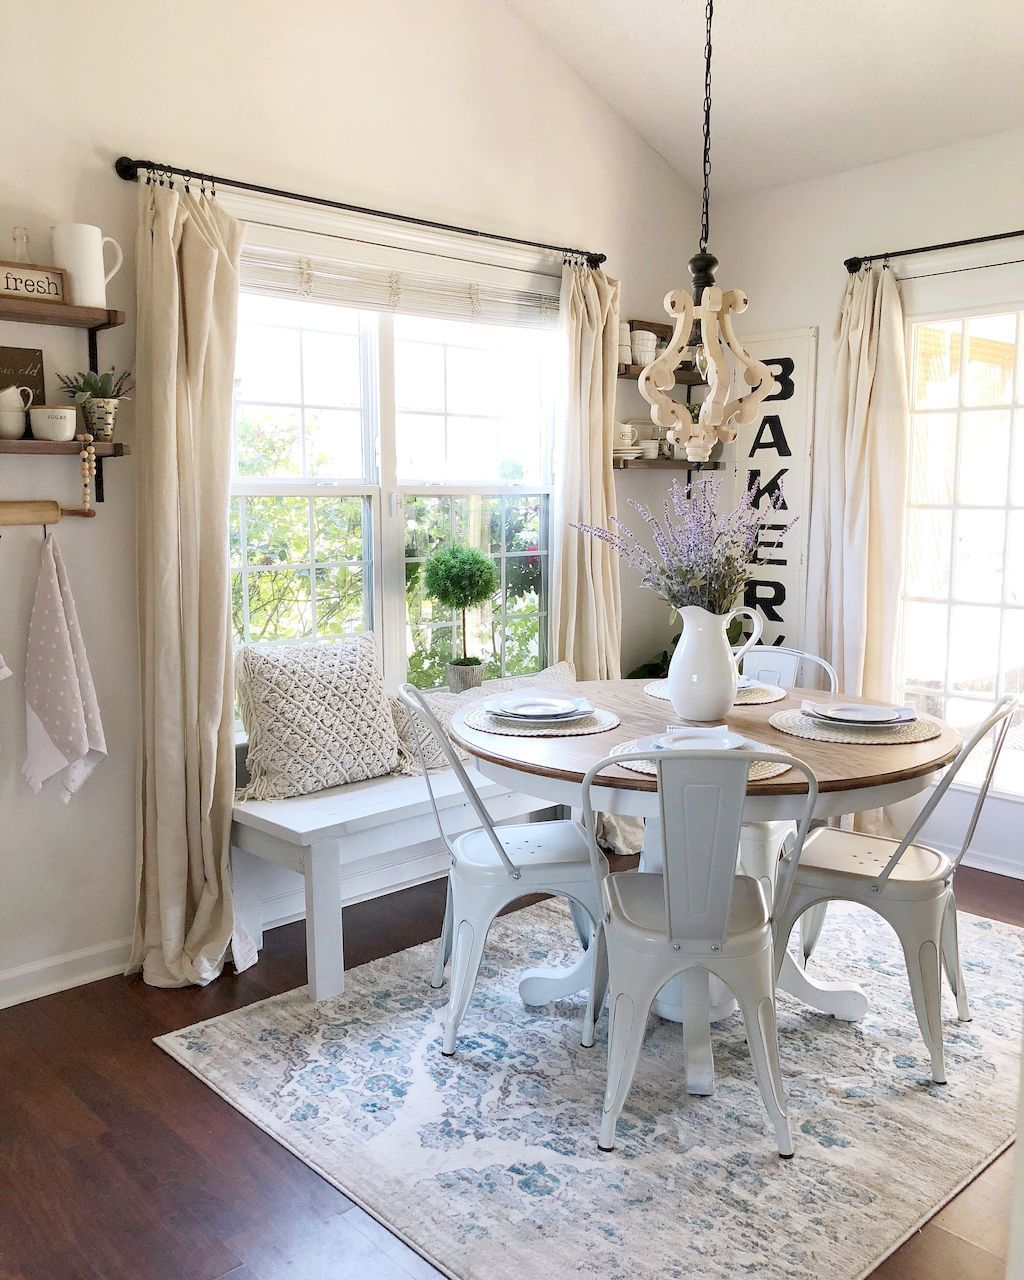 Pin By Anjuli Jethwa On Living Room Makeover Dining Room Curtains Farm House Living Room Living Room Decor Curtains